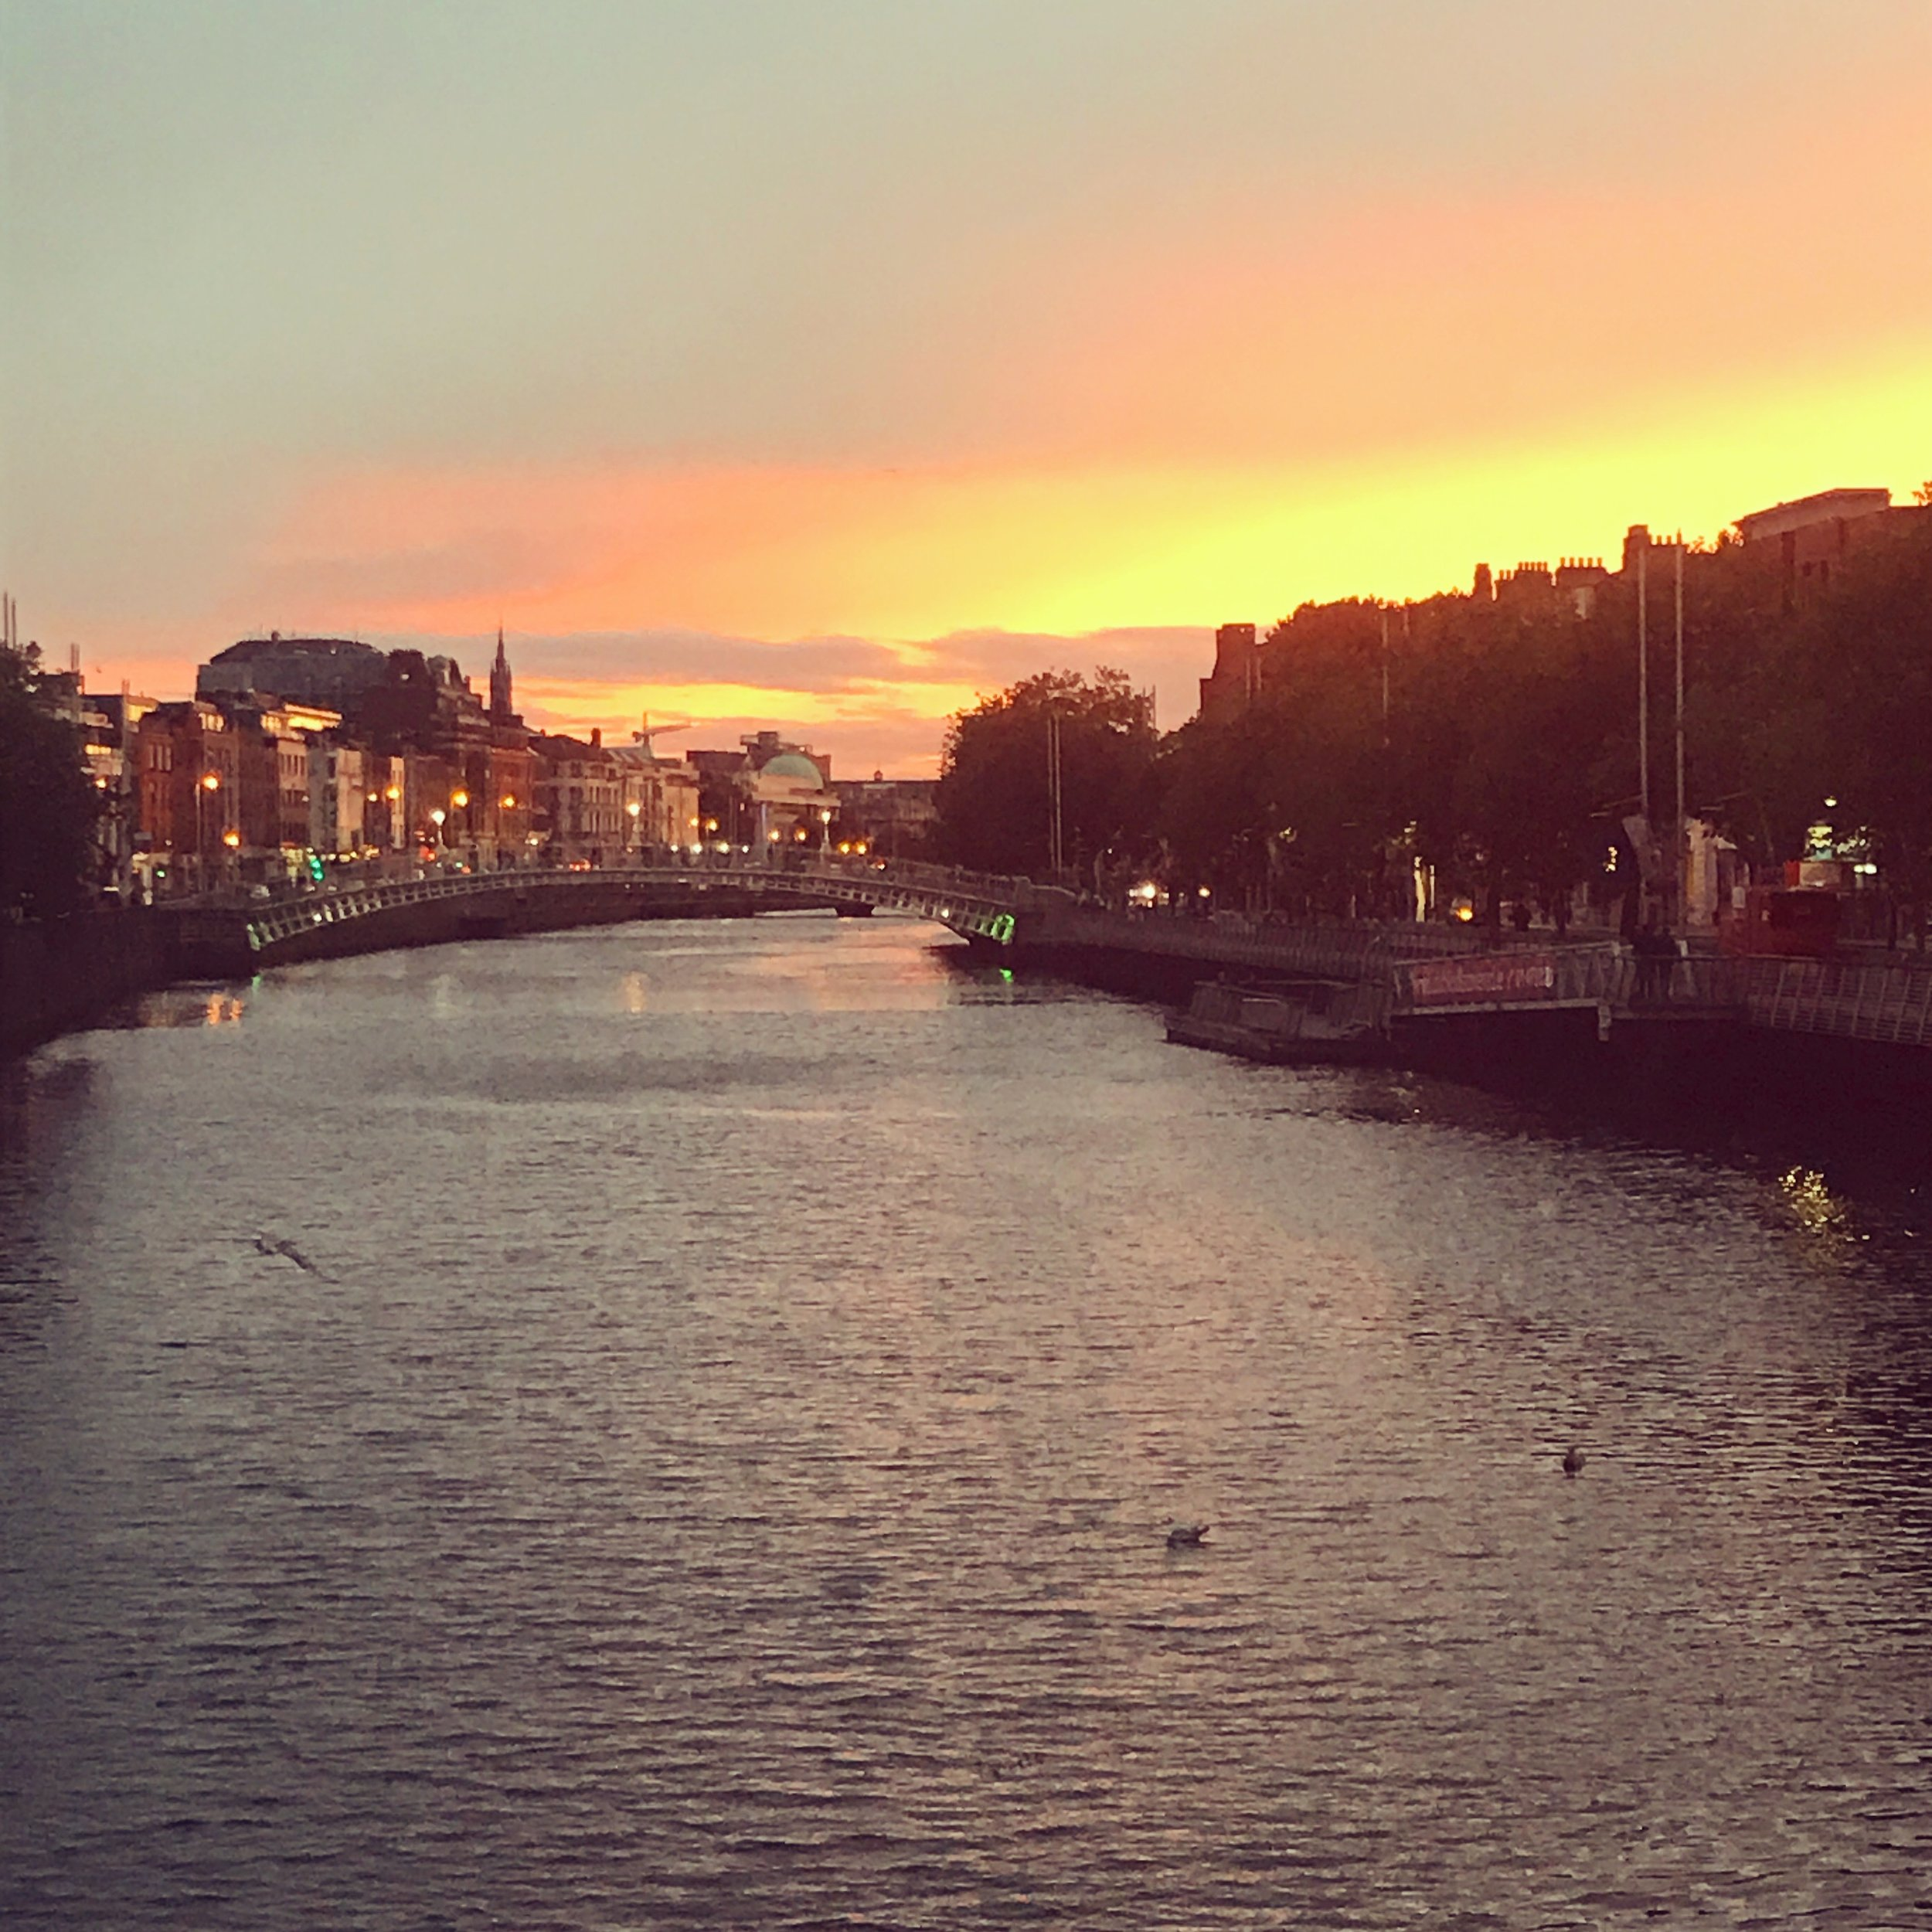 Sunset over the River Liffey in Dublin.